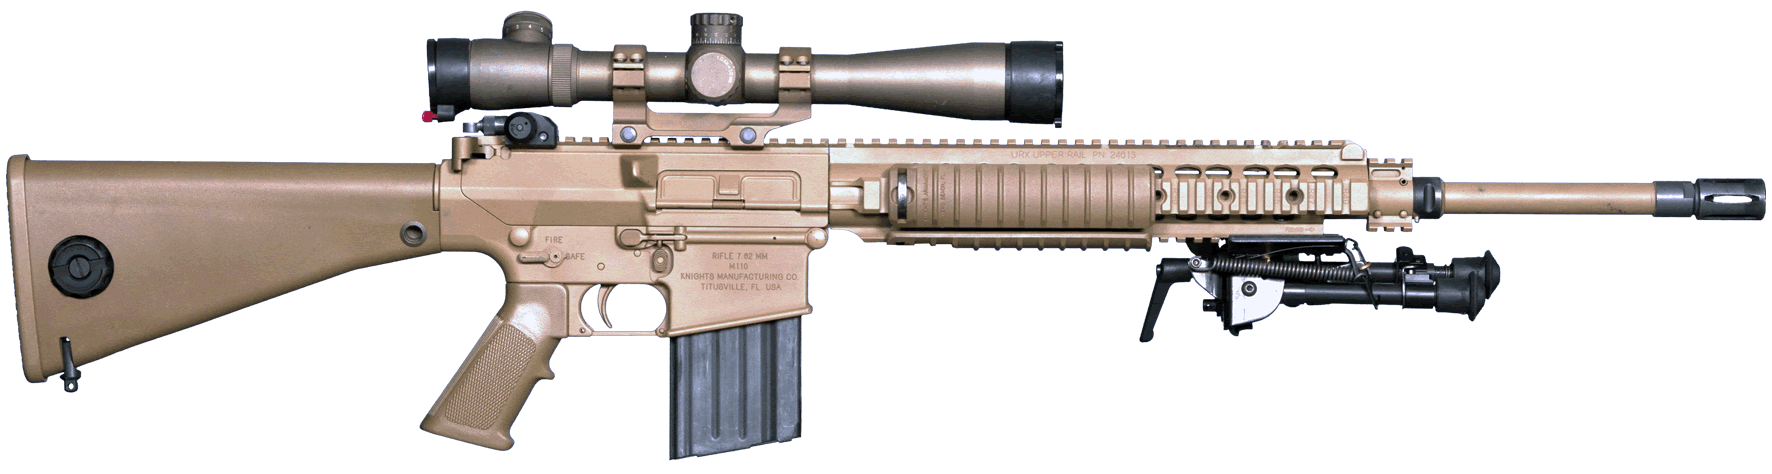 talk to me about your M110 clone builds - Page 1 - AR15.COM M110 Sniper Rifle Suppressed